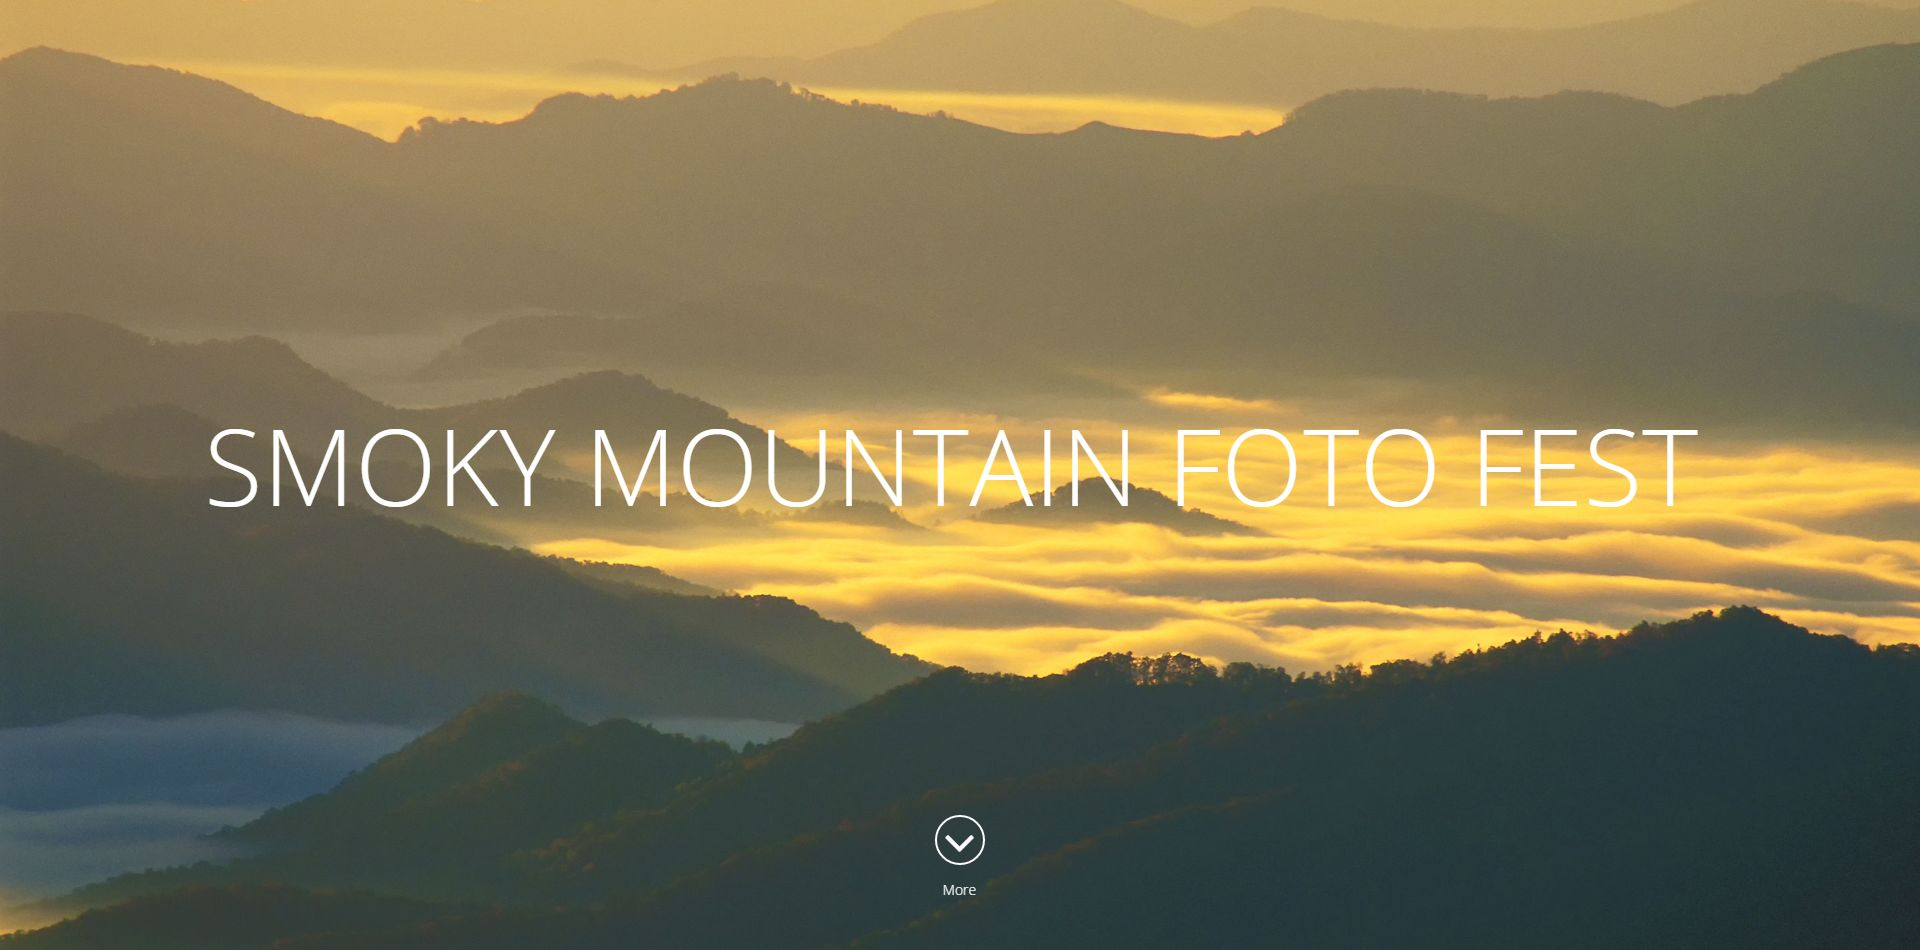 Home Page for Smoky Mountain Foto Fest